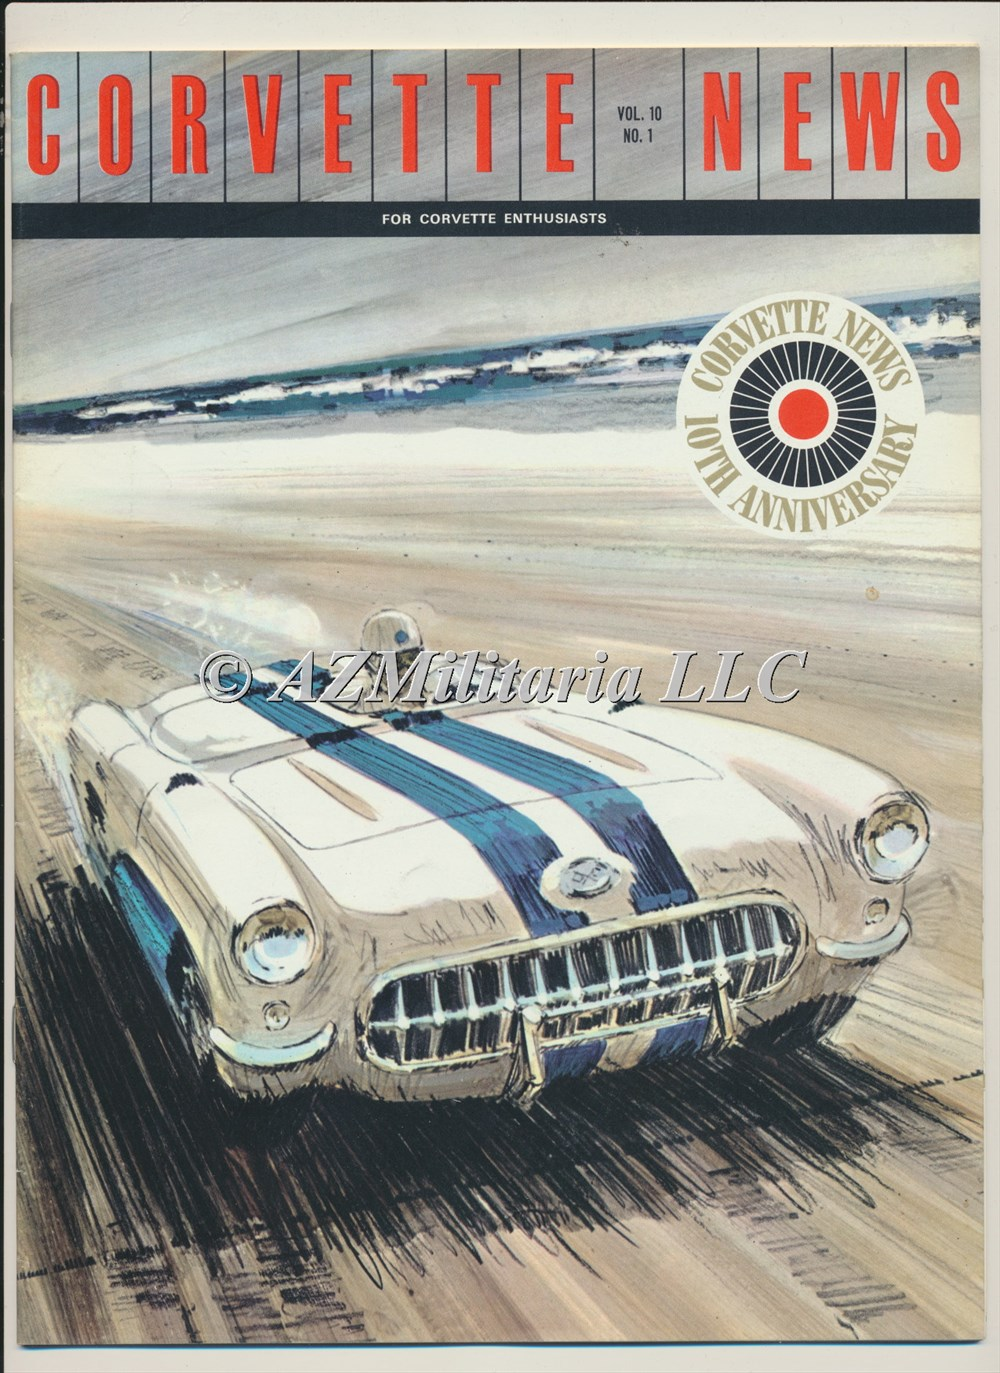 Primary image for Corvette News Vol. 10 No. 1